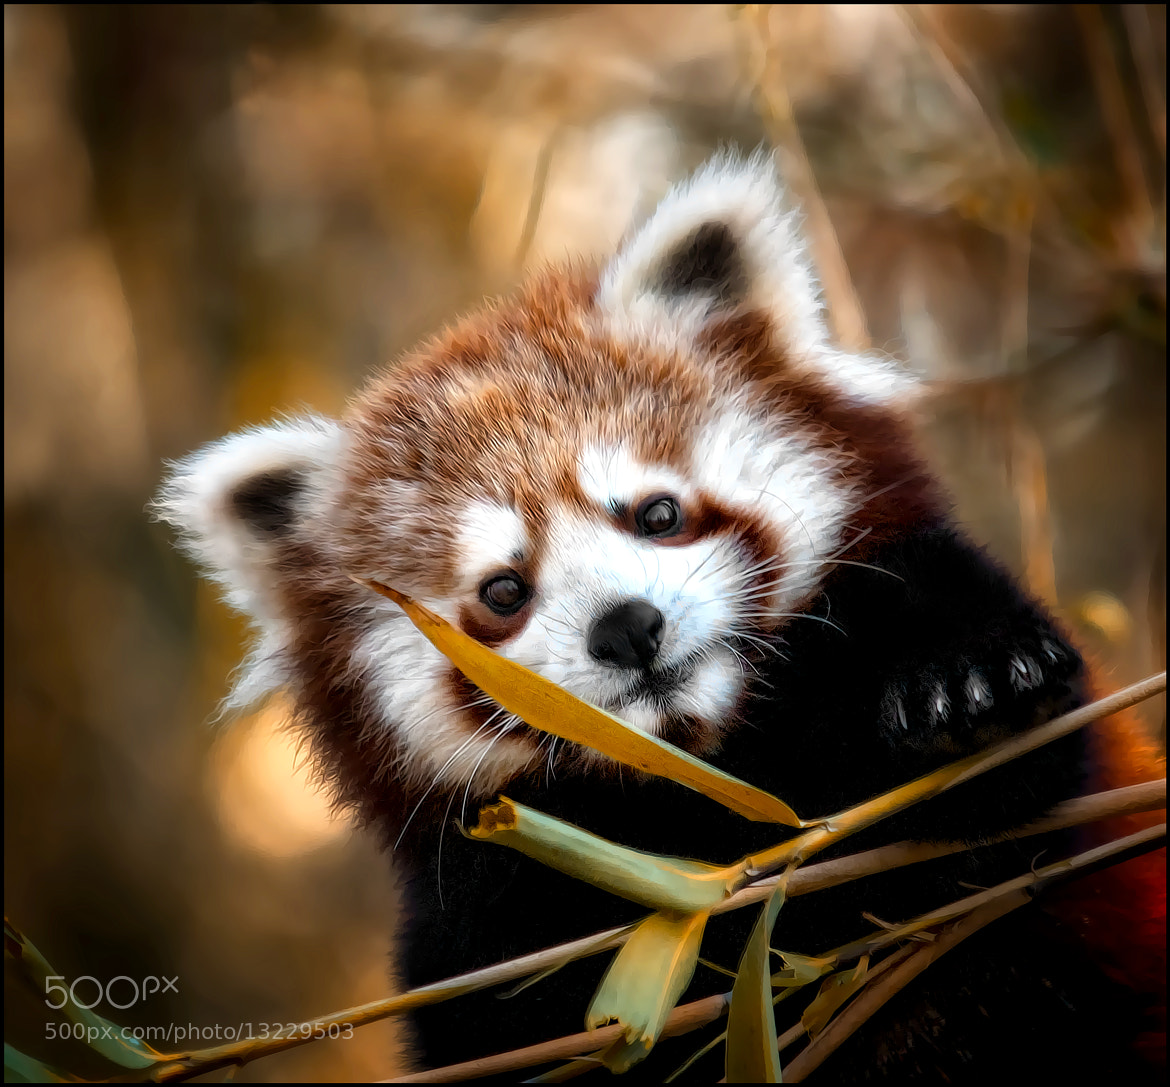 Photograph cuddle me :-) by Sonja Probst on 500px